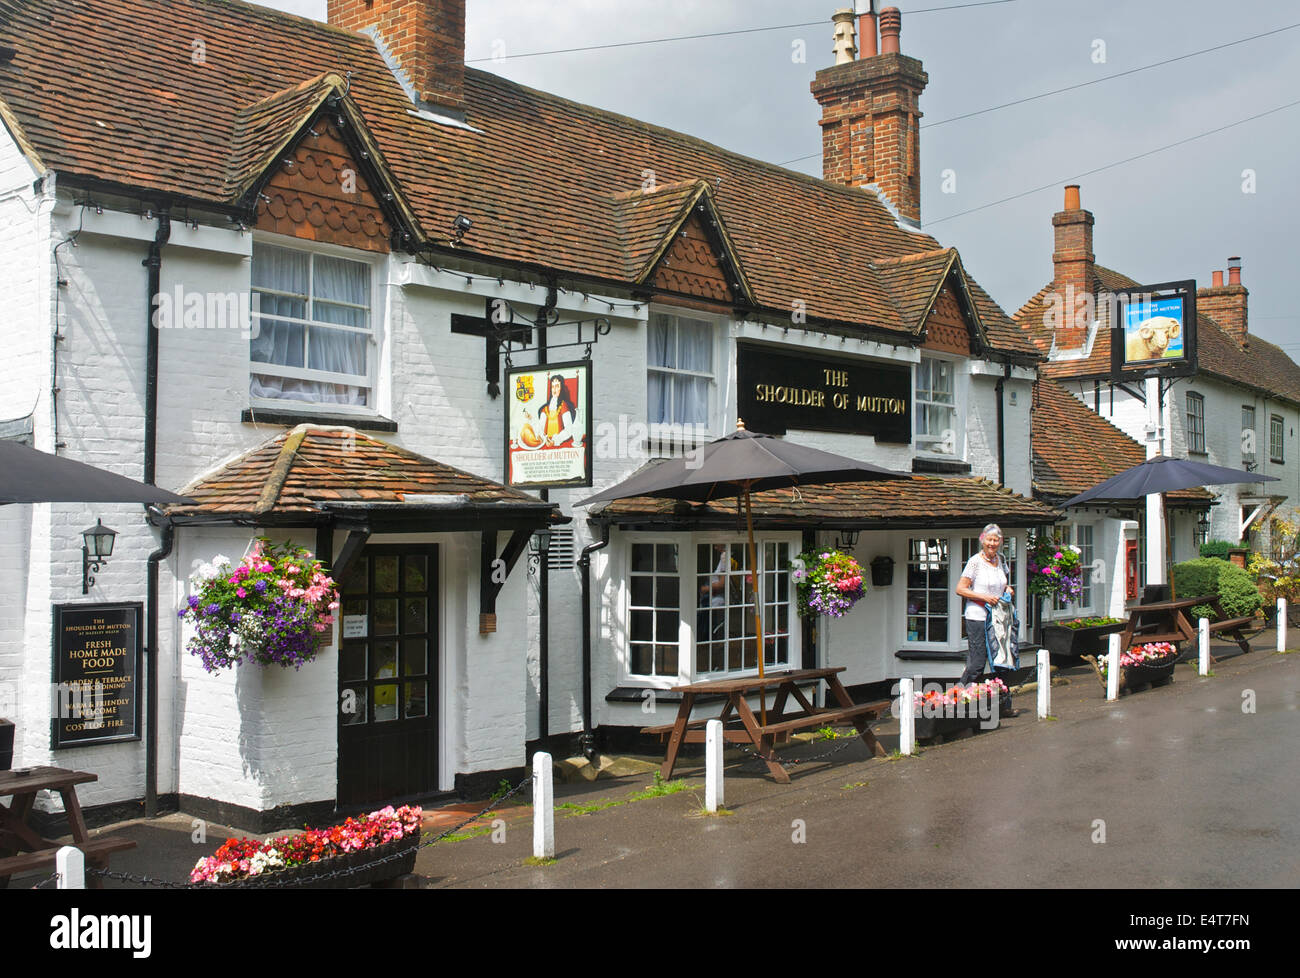 Senior donna lasciando la spalla di montone a Hazeley Heath, un pub vicino Hartley Wintney, Hampshire, Inghilterra, Immagini Stock